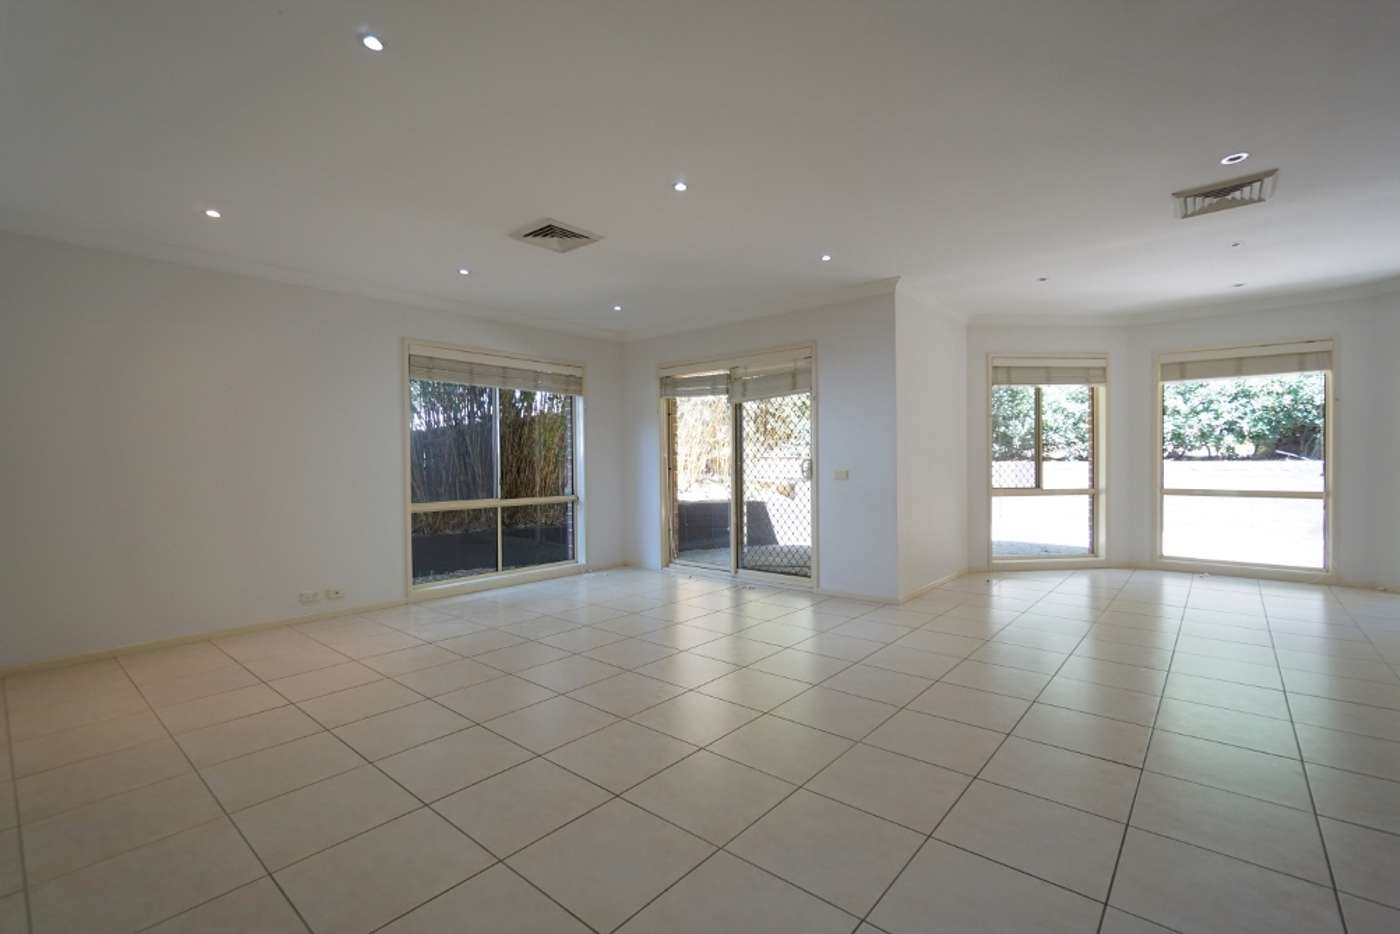 Sixth view of Homely house listing, 44 Somerset Street, Epping NSW 2121